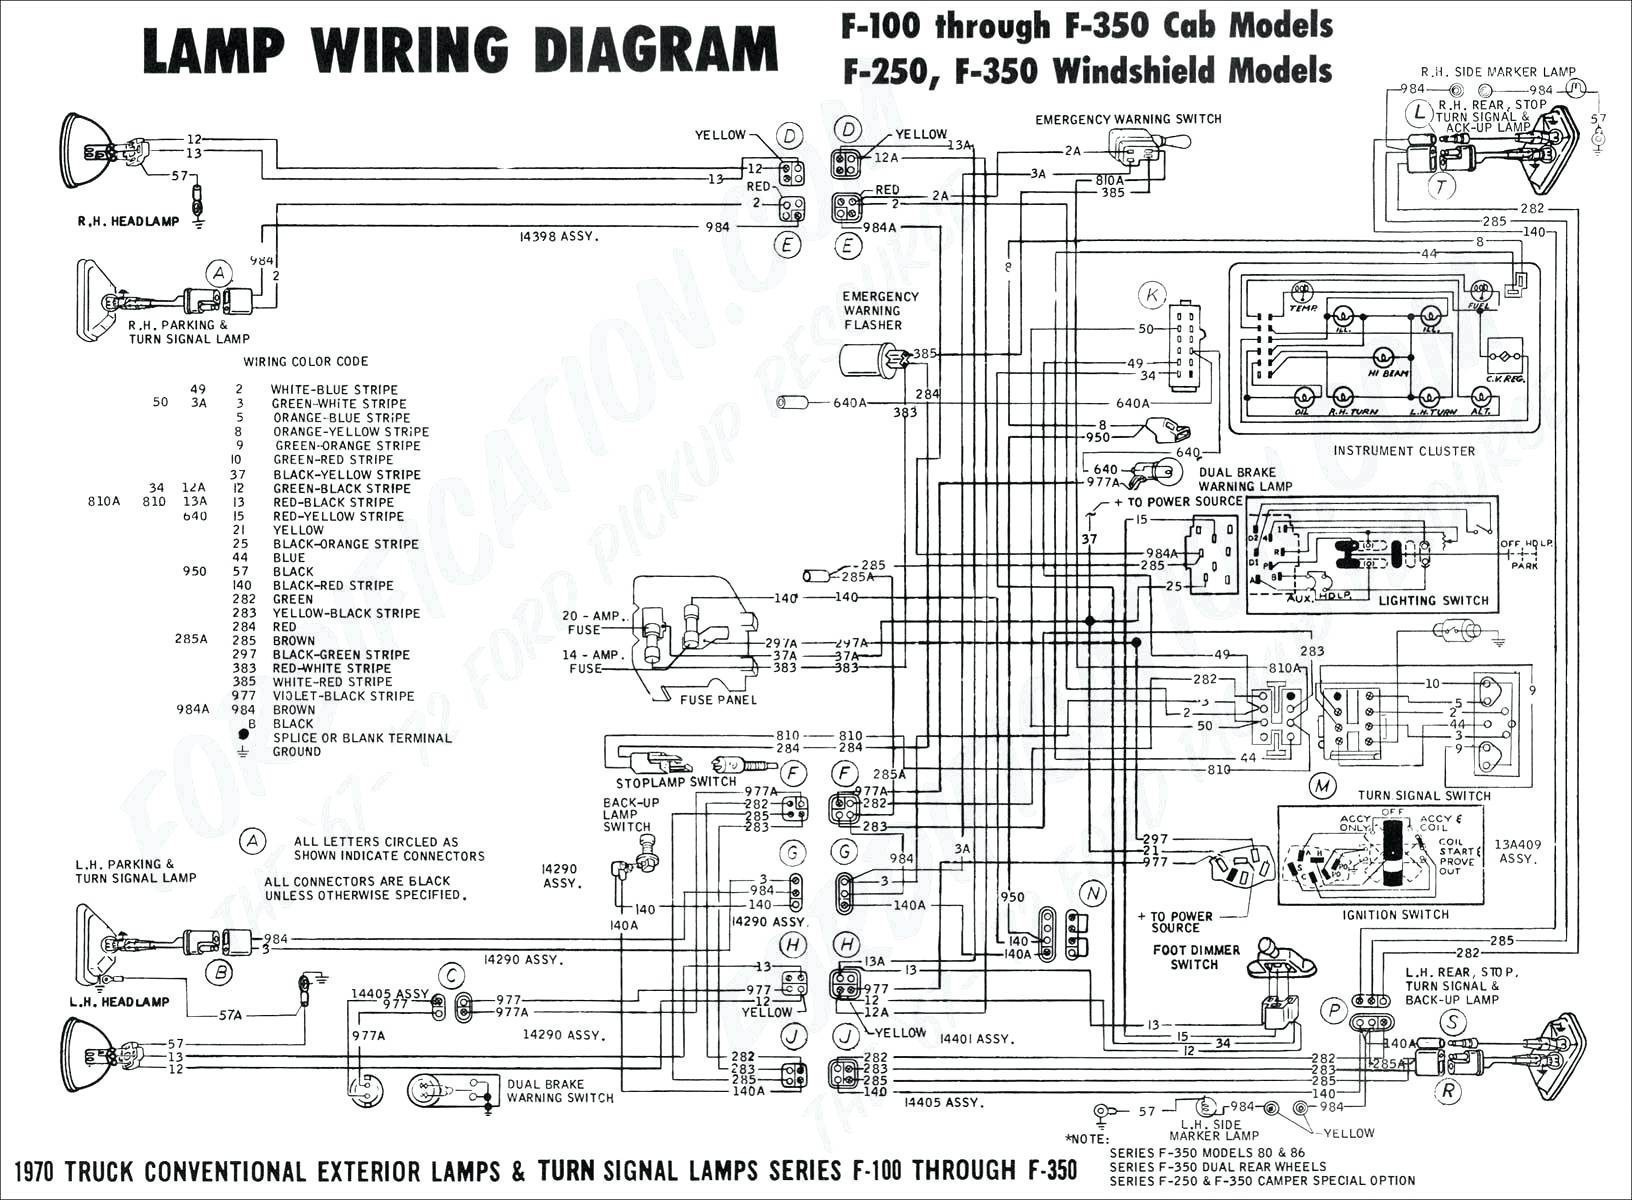 1998 Dodge Ram 1500 Wiring Diagram Electrical Circuit 1998